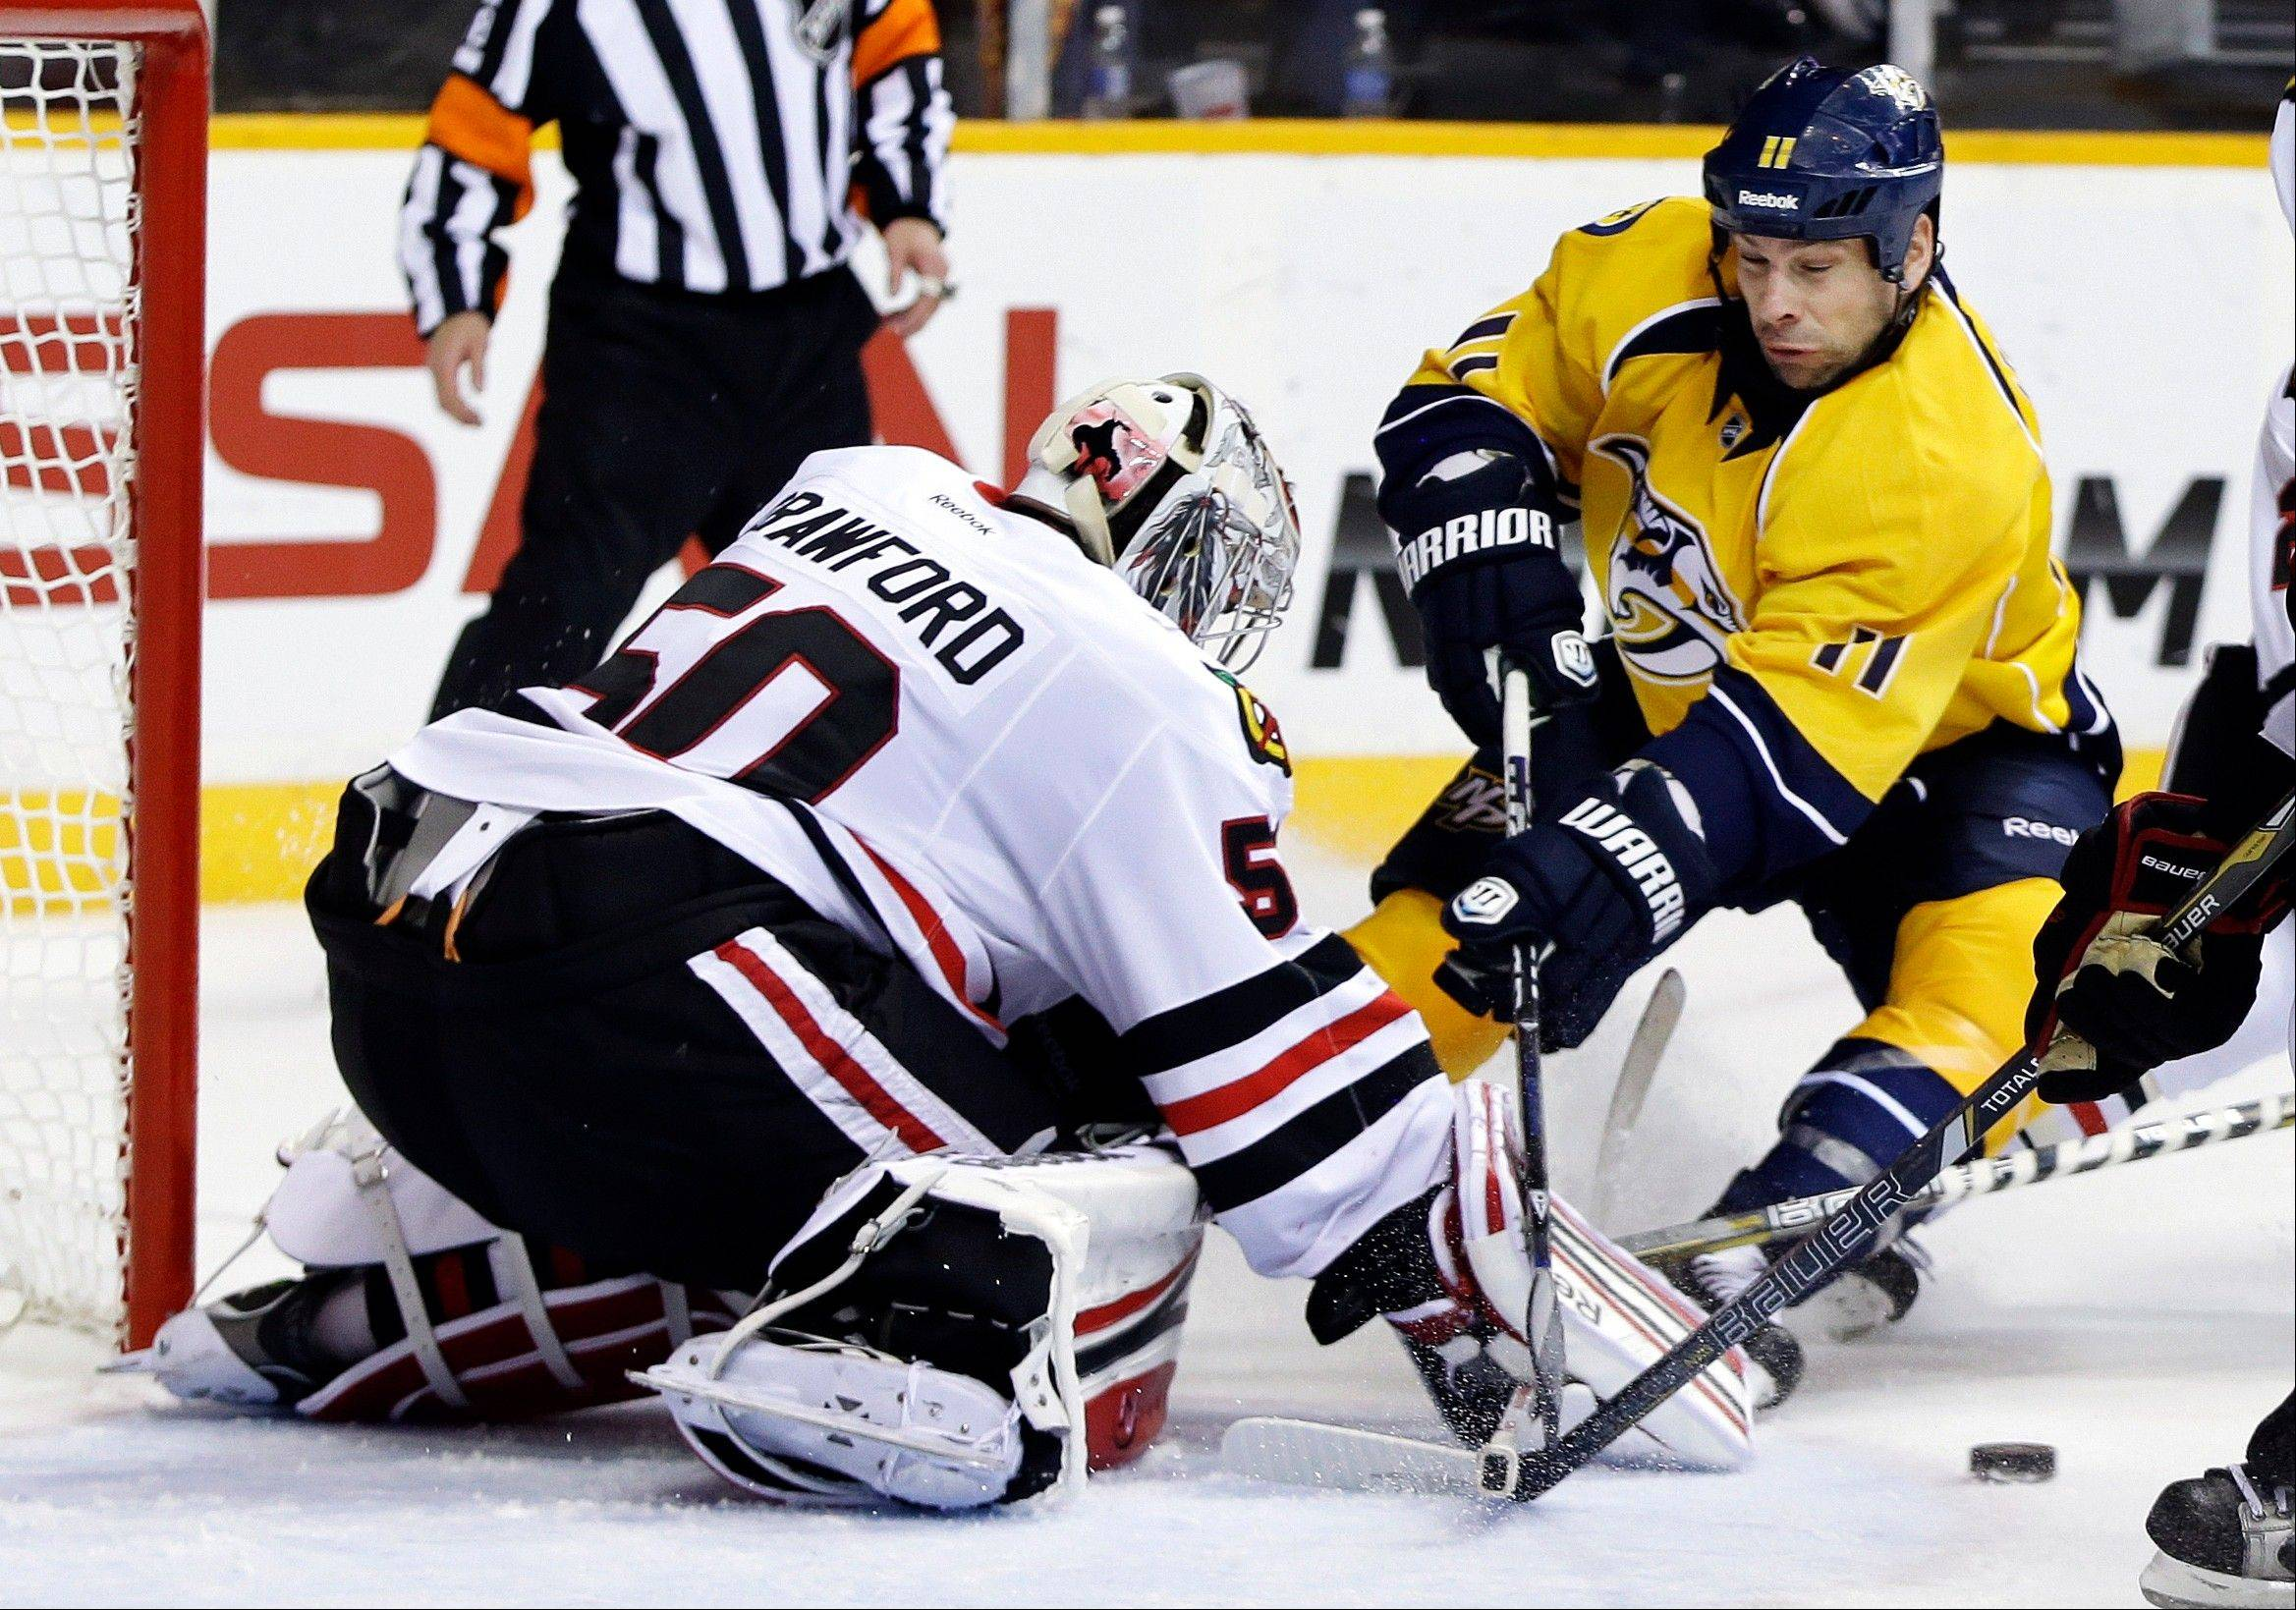 Blackhawks' Crawford out with suspected concussion